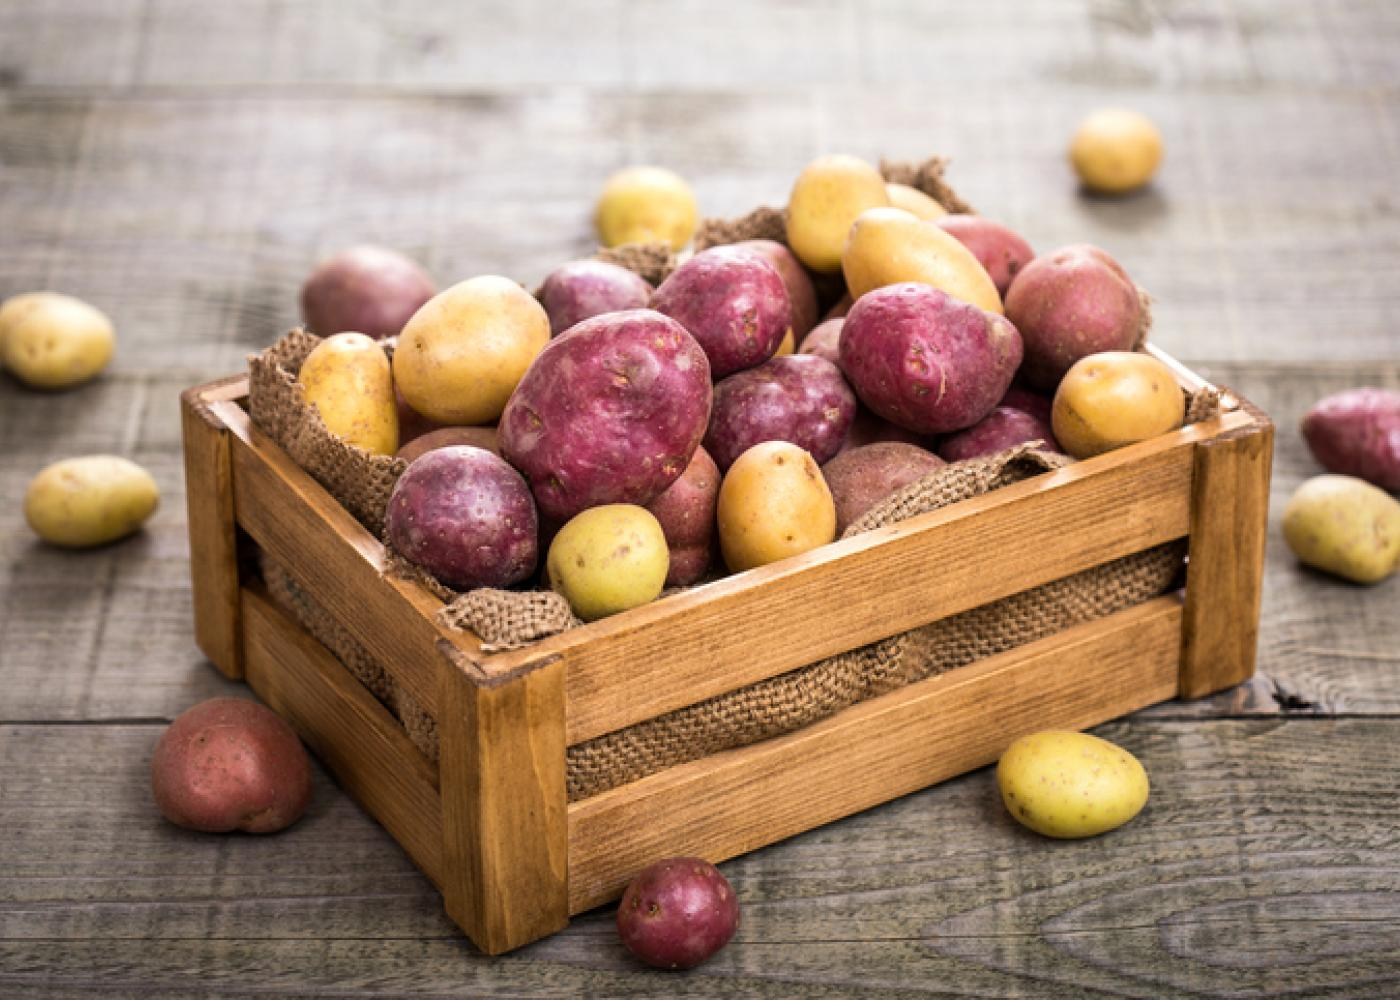 Red and white potatoes in a crate